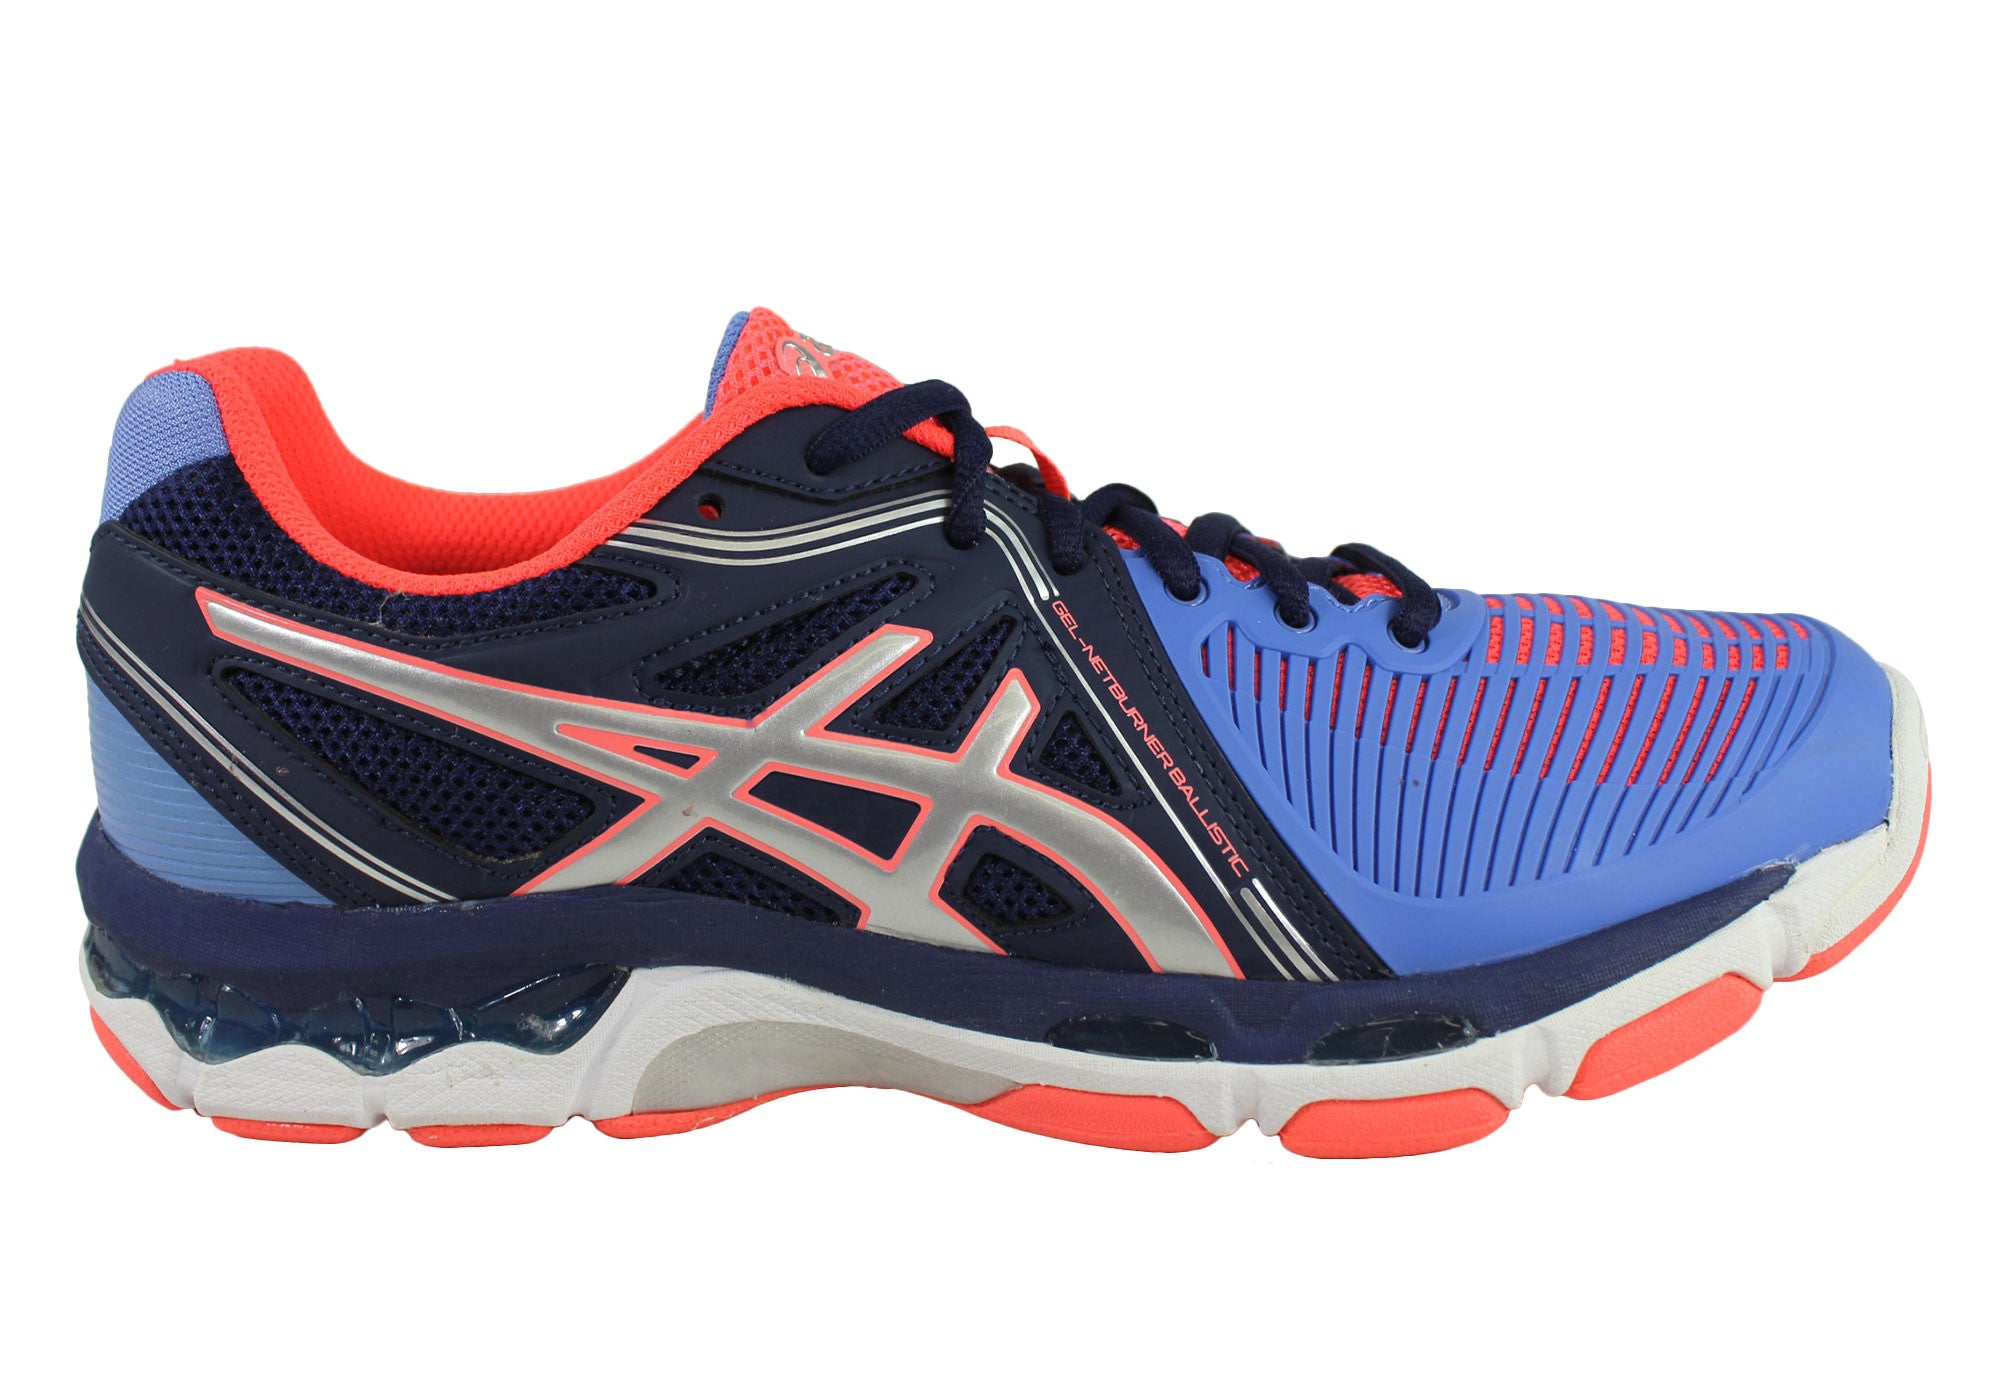 New Asics Gel-Netburner Ballistic Womens Netball Shoes  ea4fdc60070b